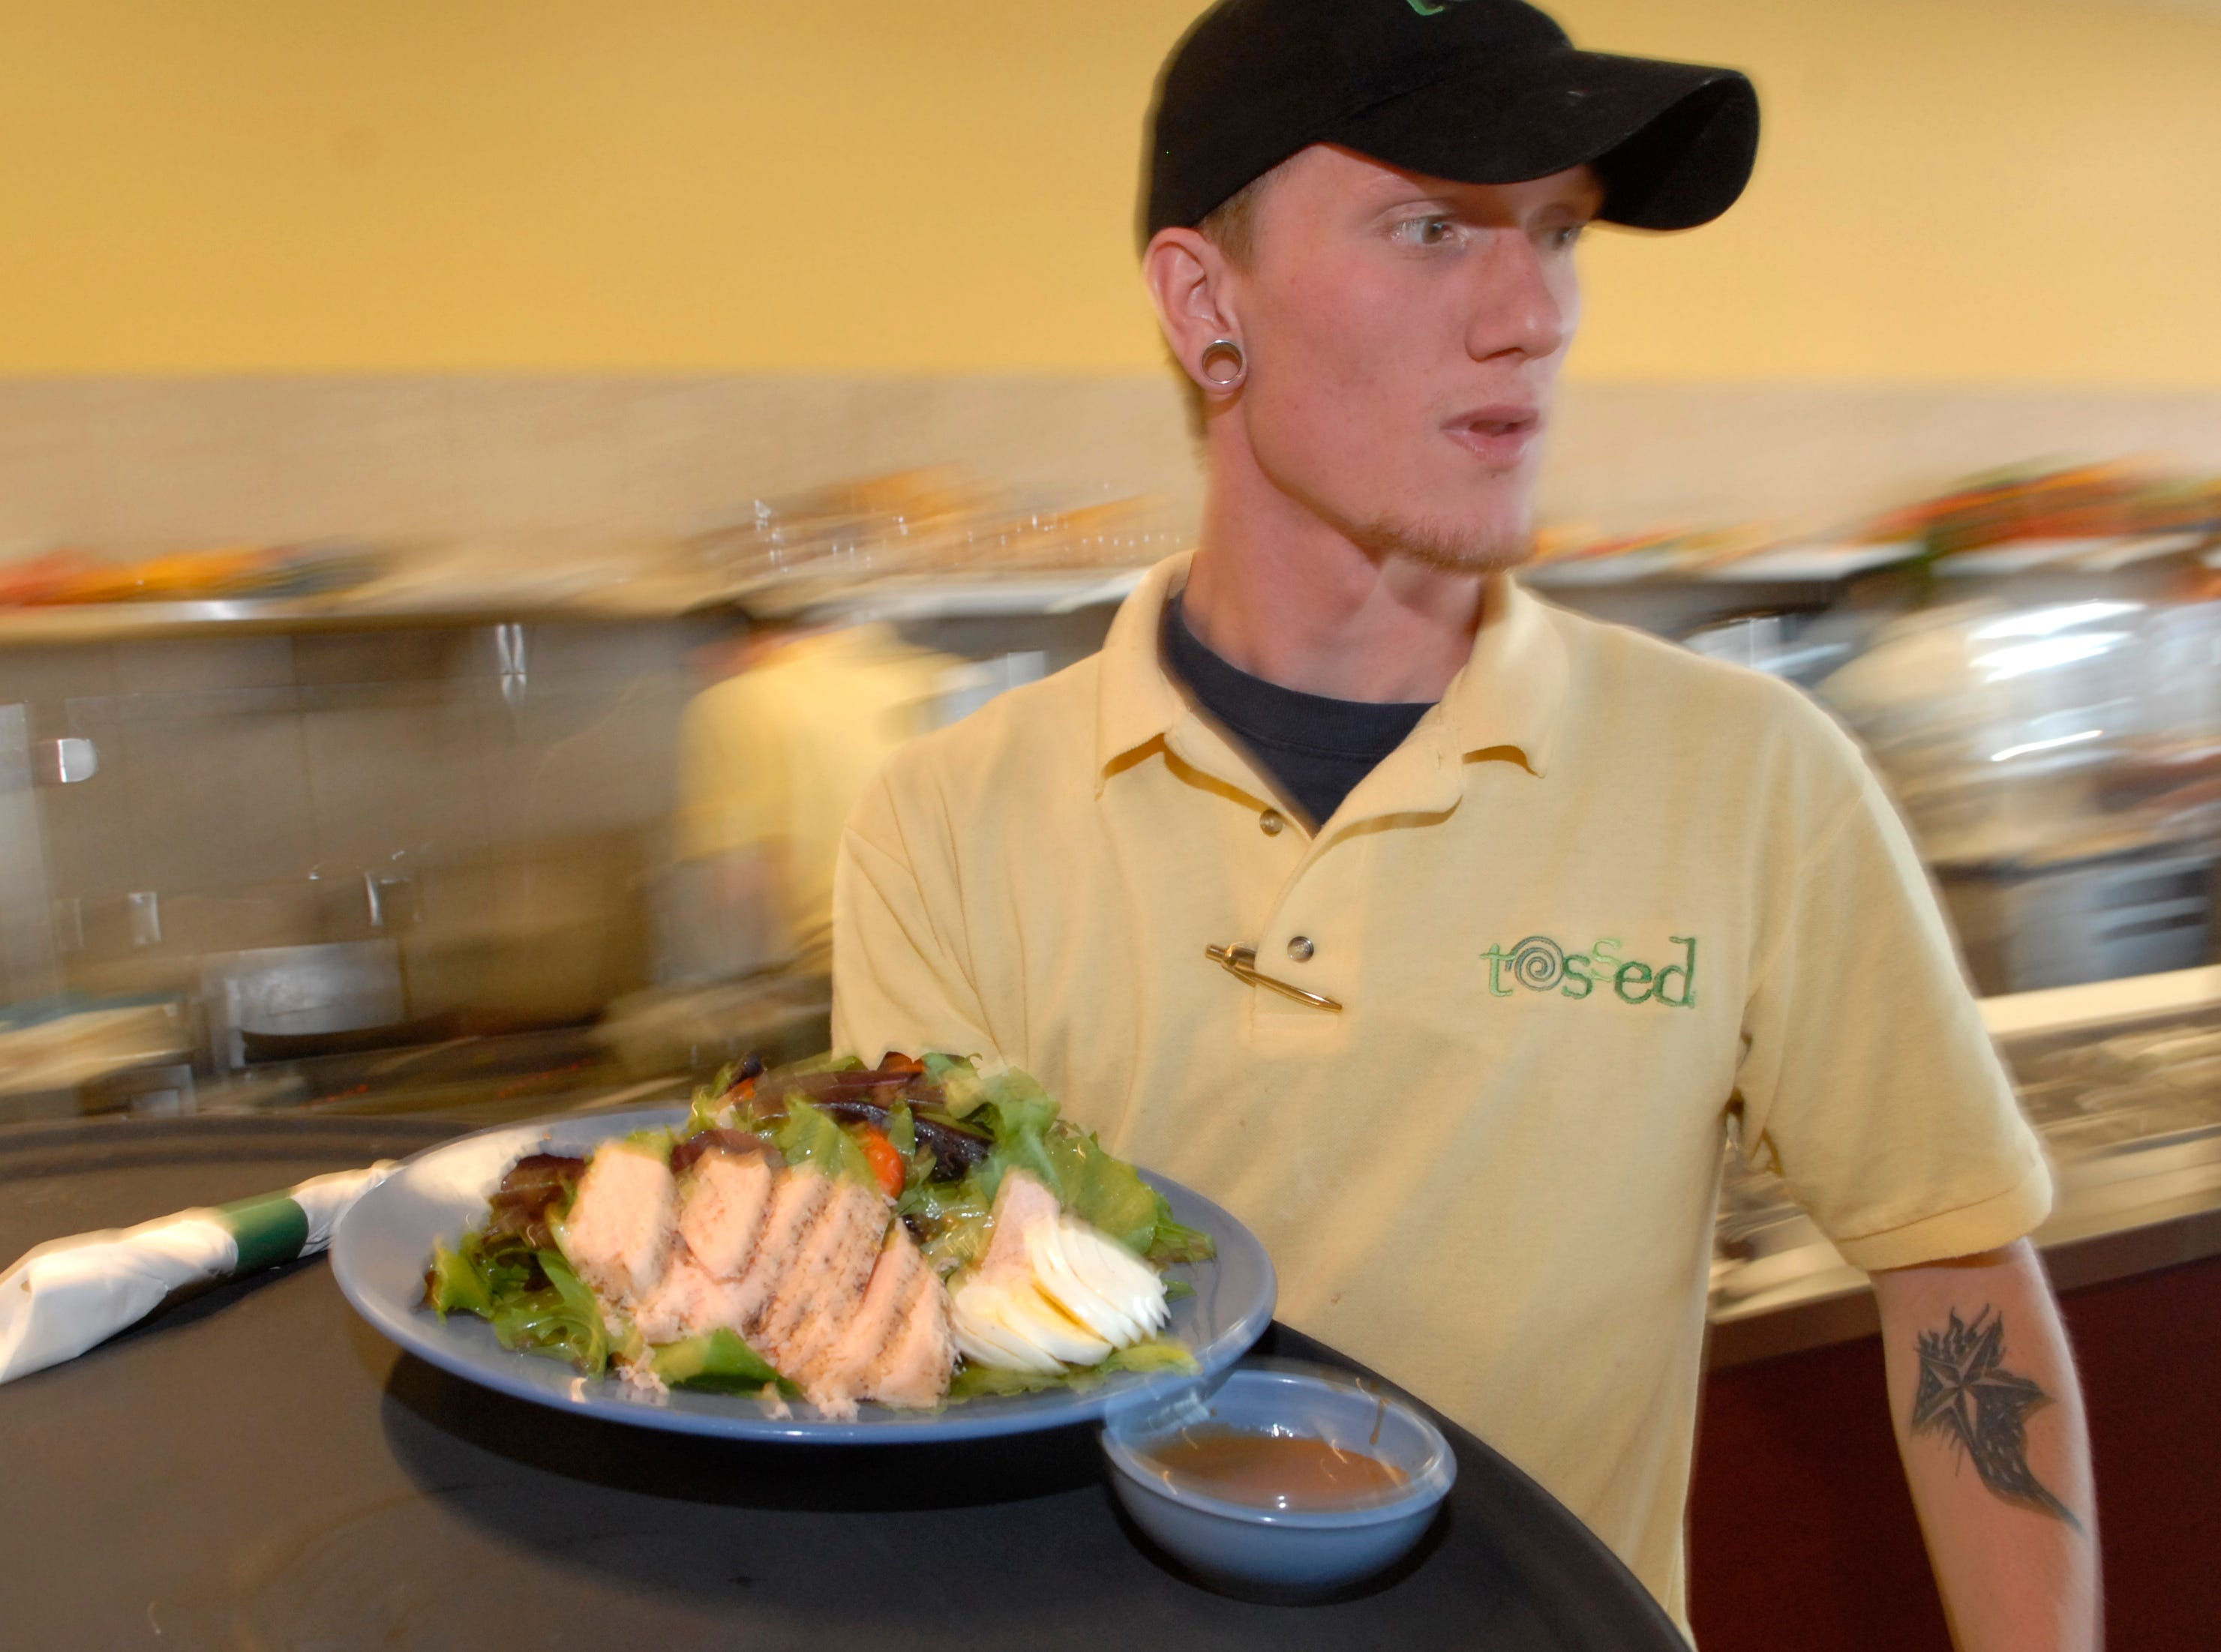 Tossed employee Tennessee Smith delivers a meal to a table on Thursday, March 3, 2007 at the new restaurant in Turkey Creek. The restaurant specializes in salads, crepes and sandwiches made to order with customers choosing from 100 ingredients.